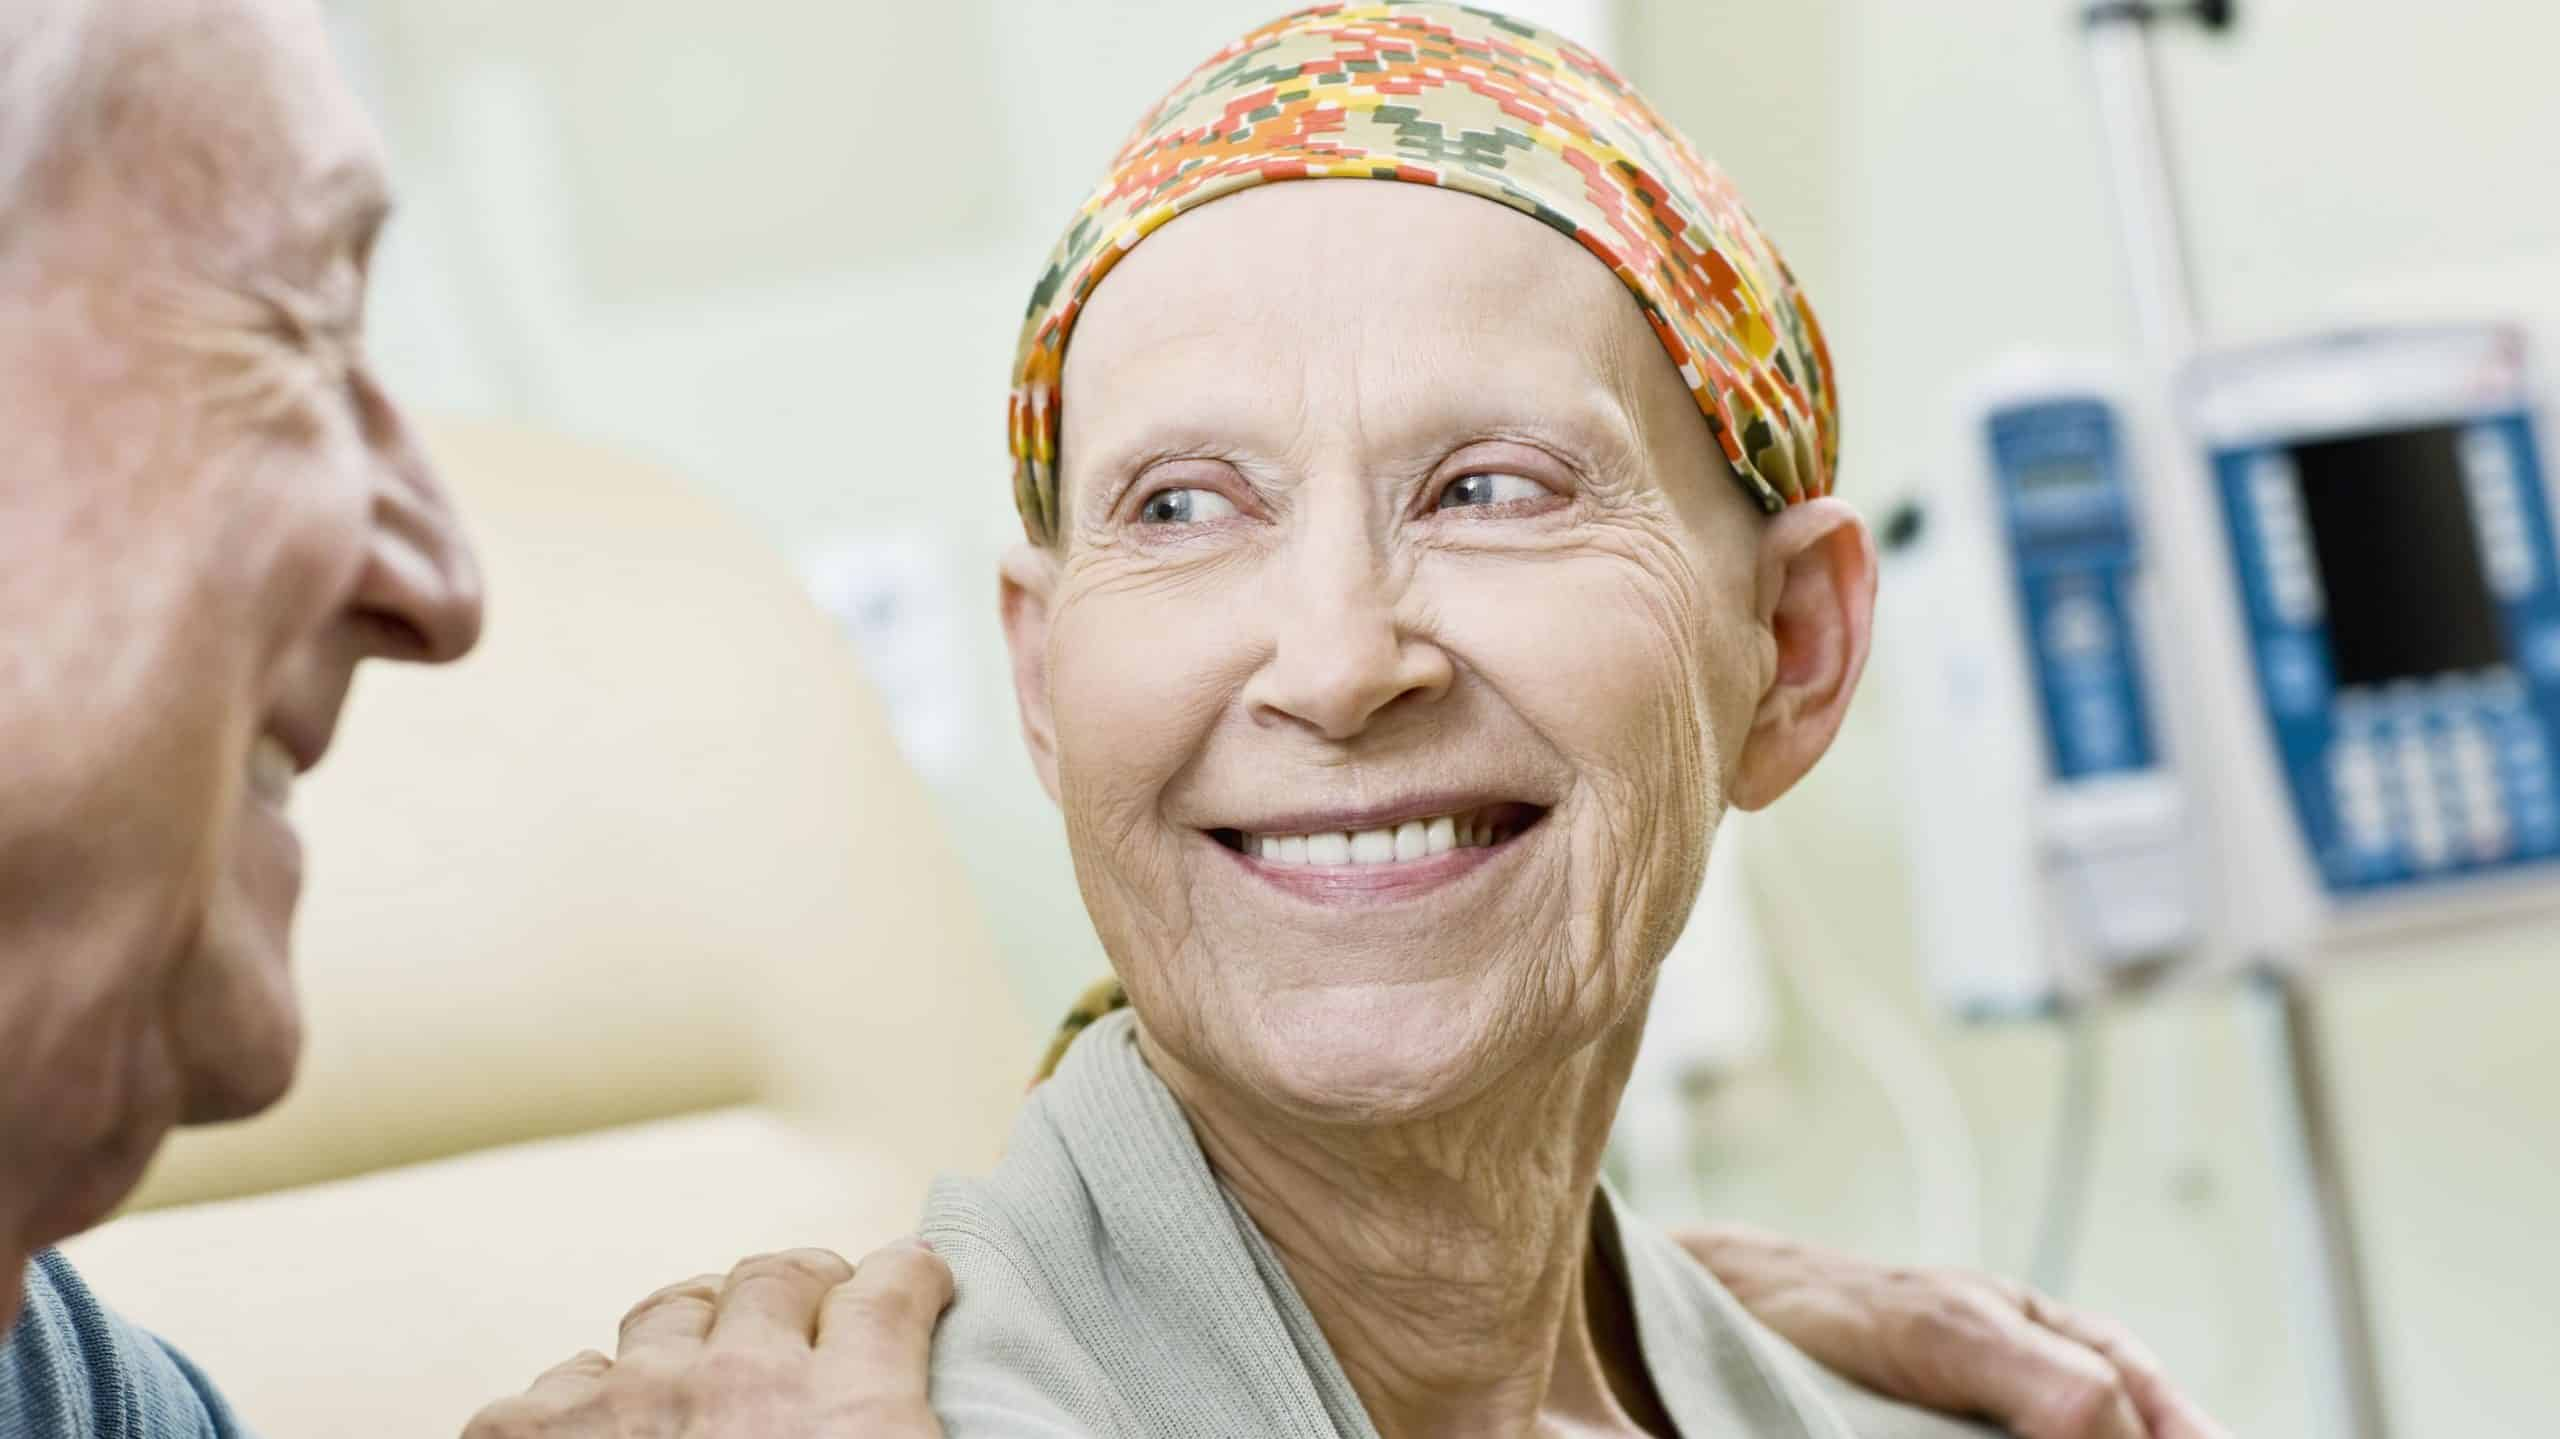 Alternative Anal Cancer Treatment in Scottsdale, Arizona